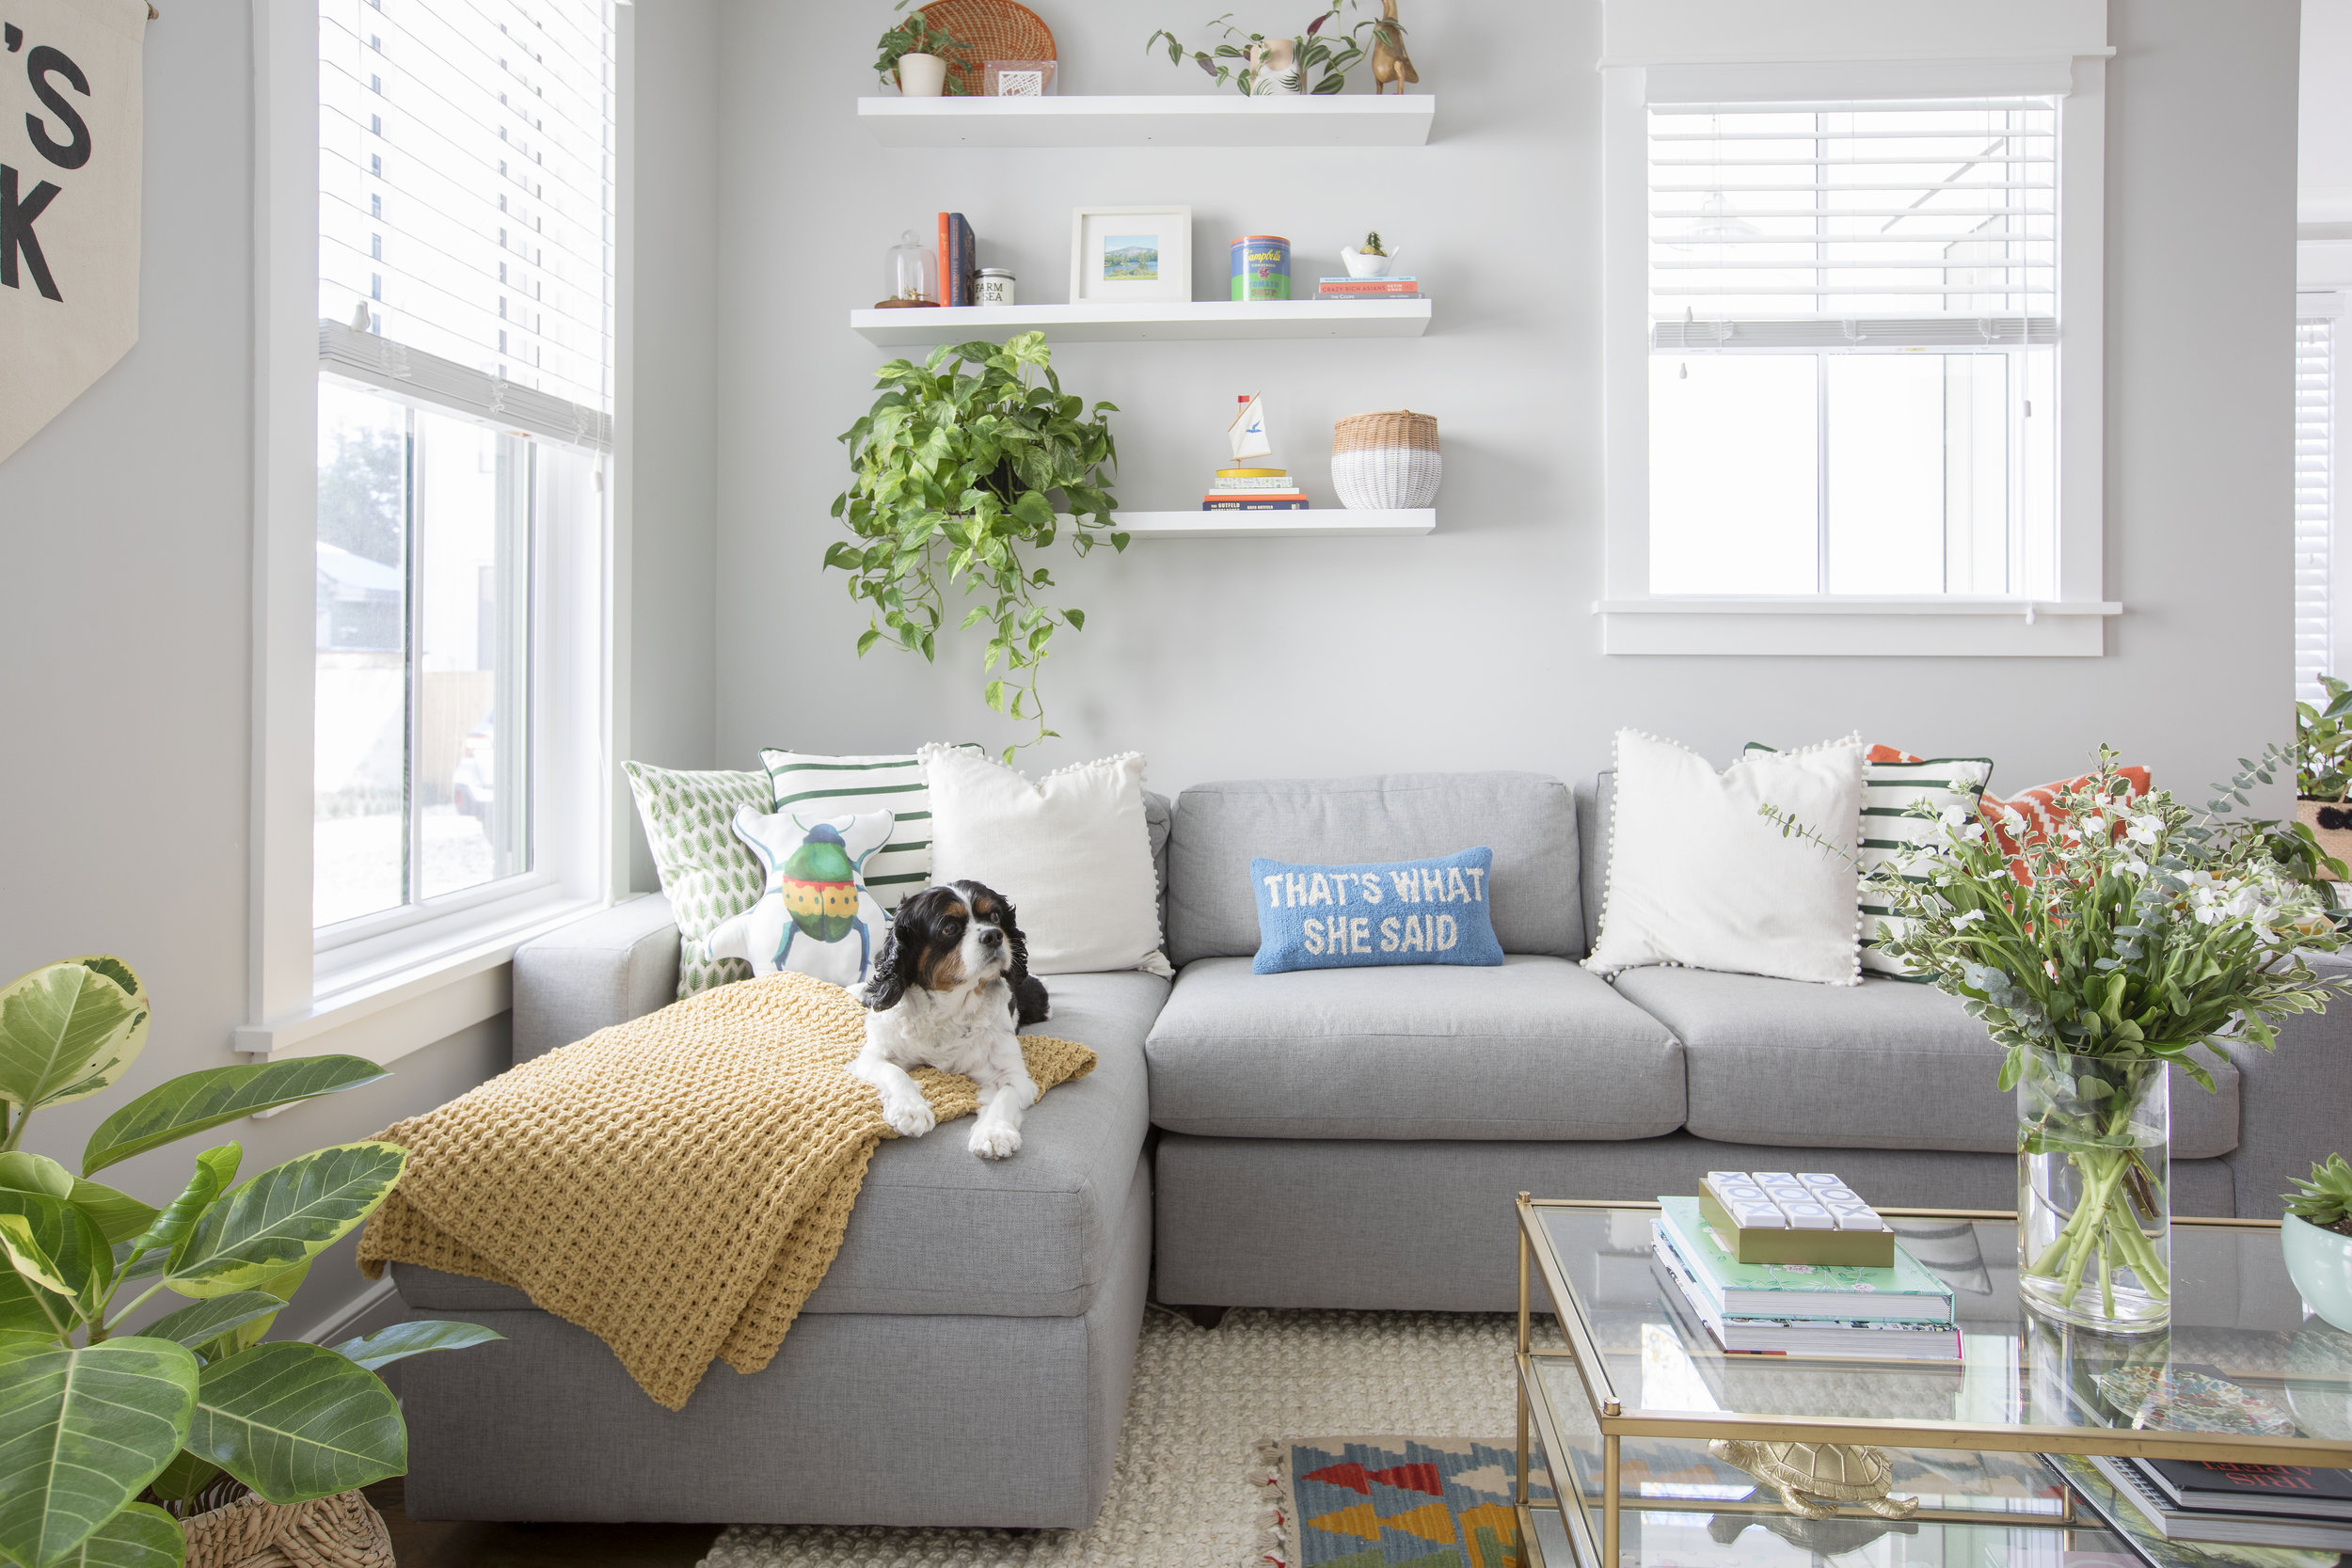 Margaret Wright Photography for Apartment Therapy